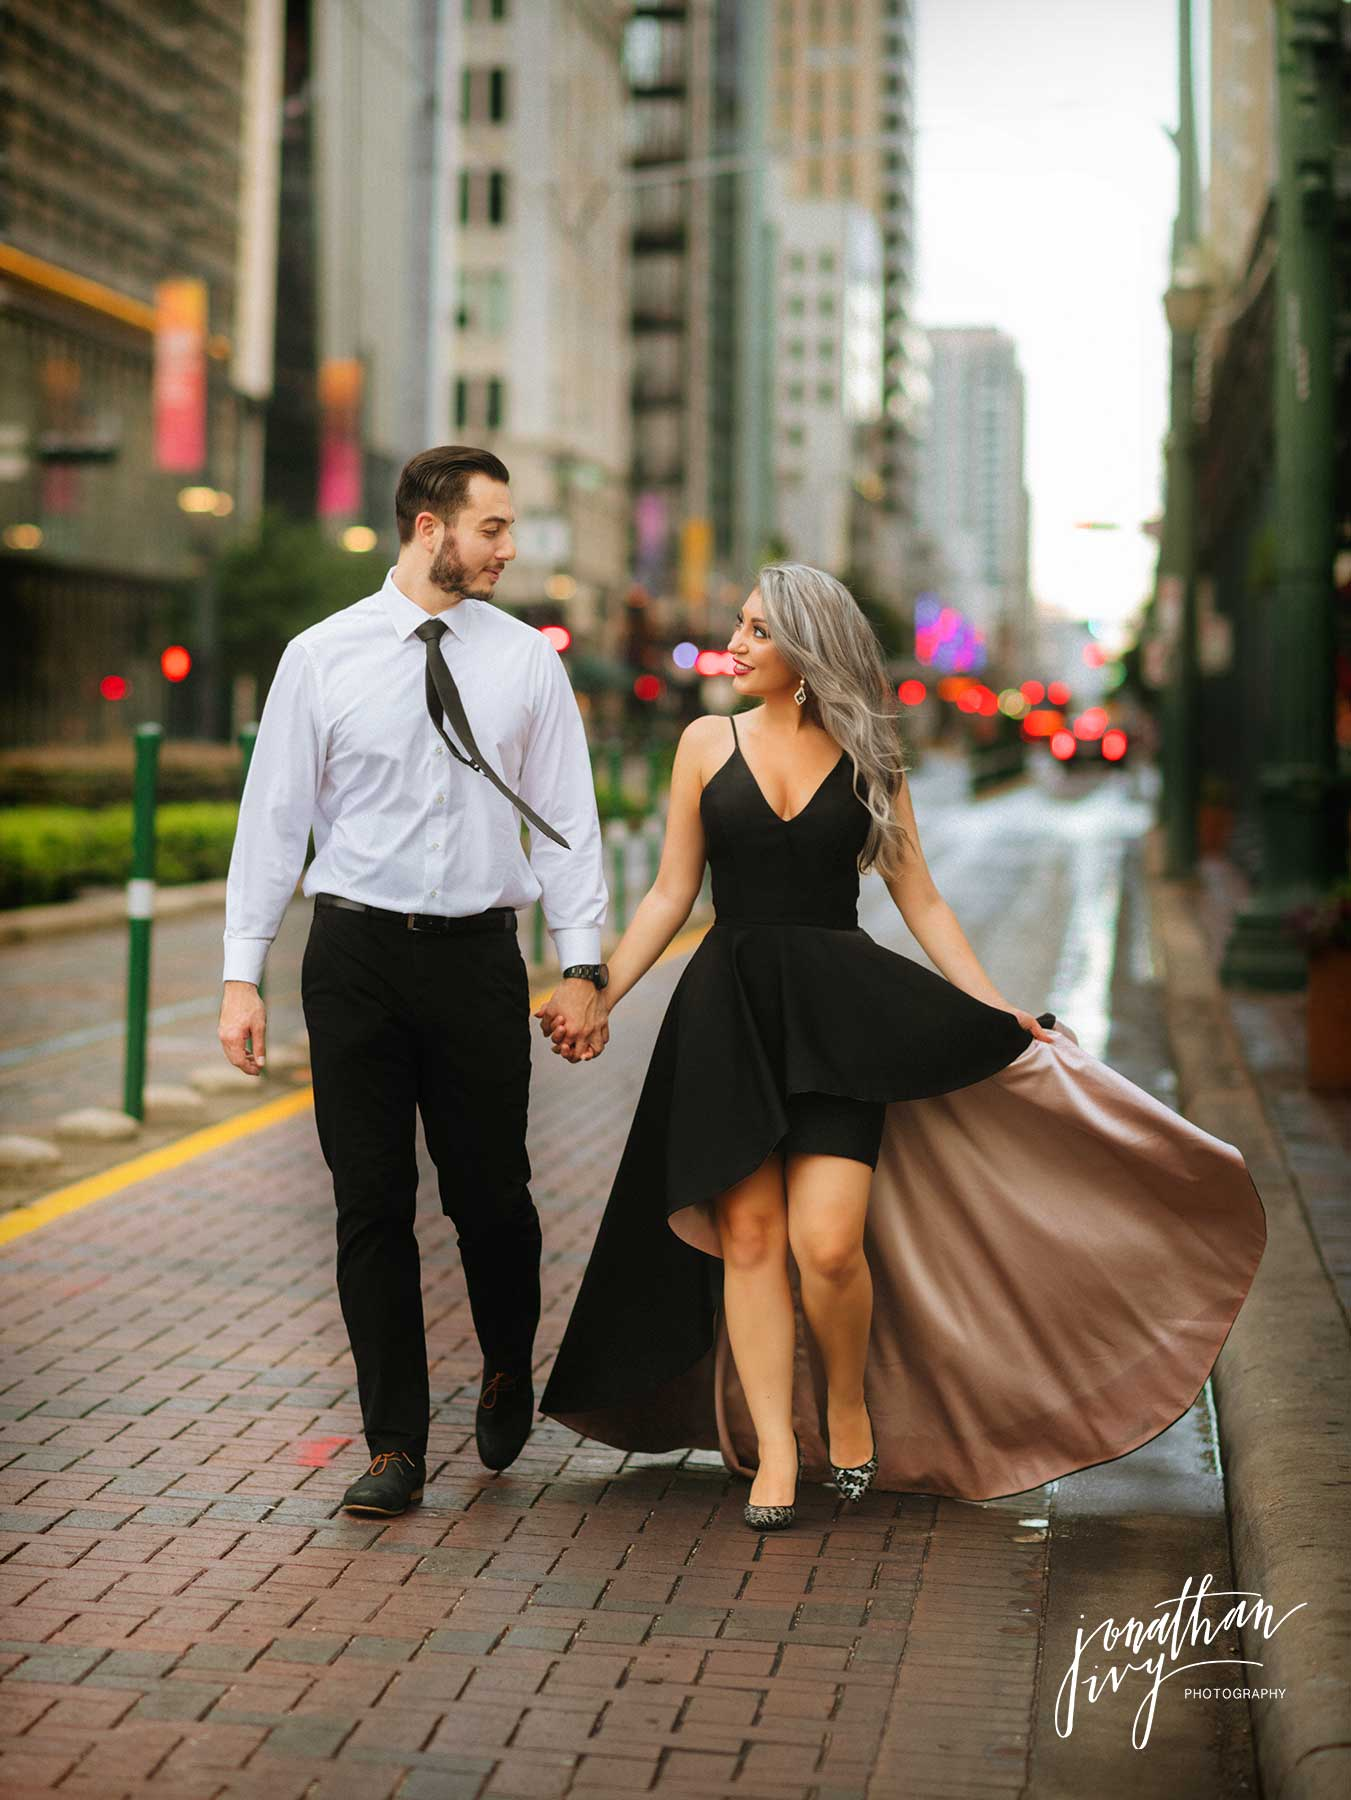 What To Wear For Engagement Photos Jonathan Ivy